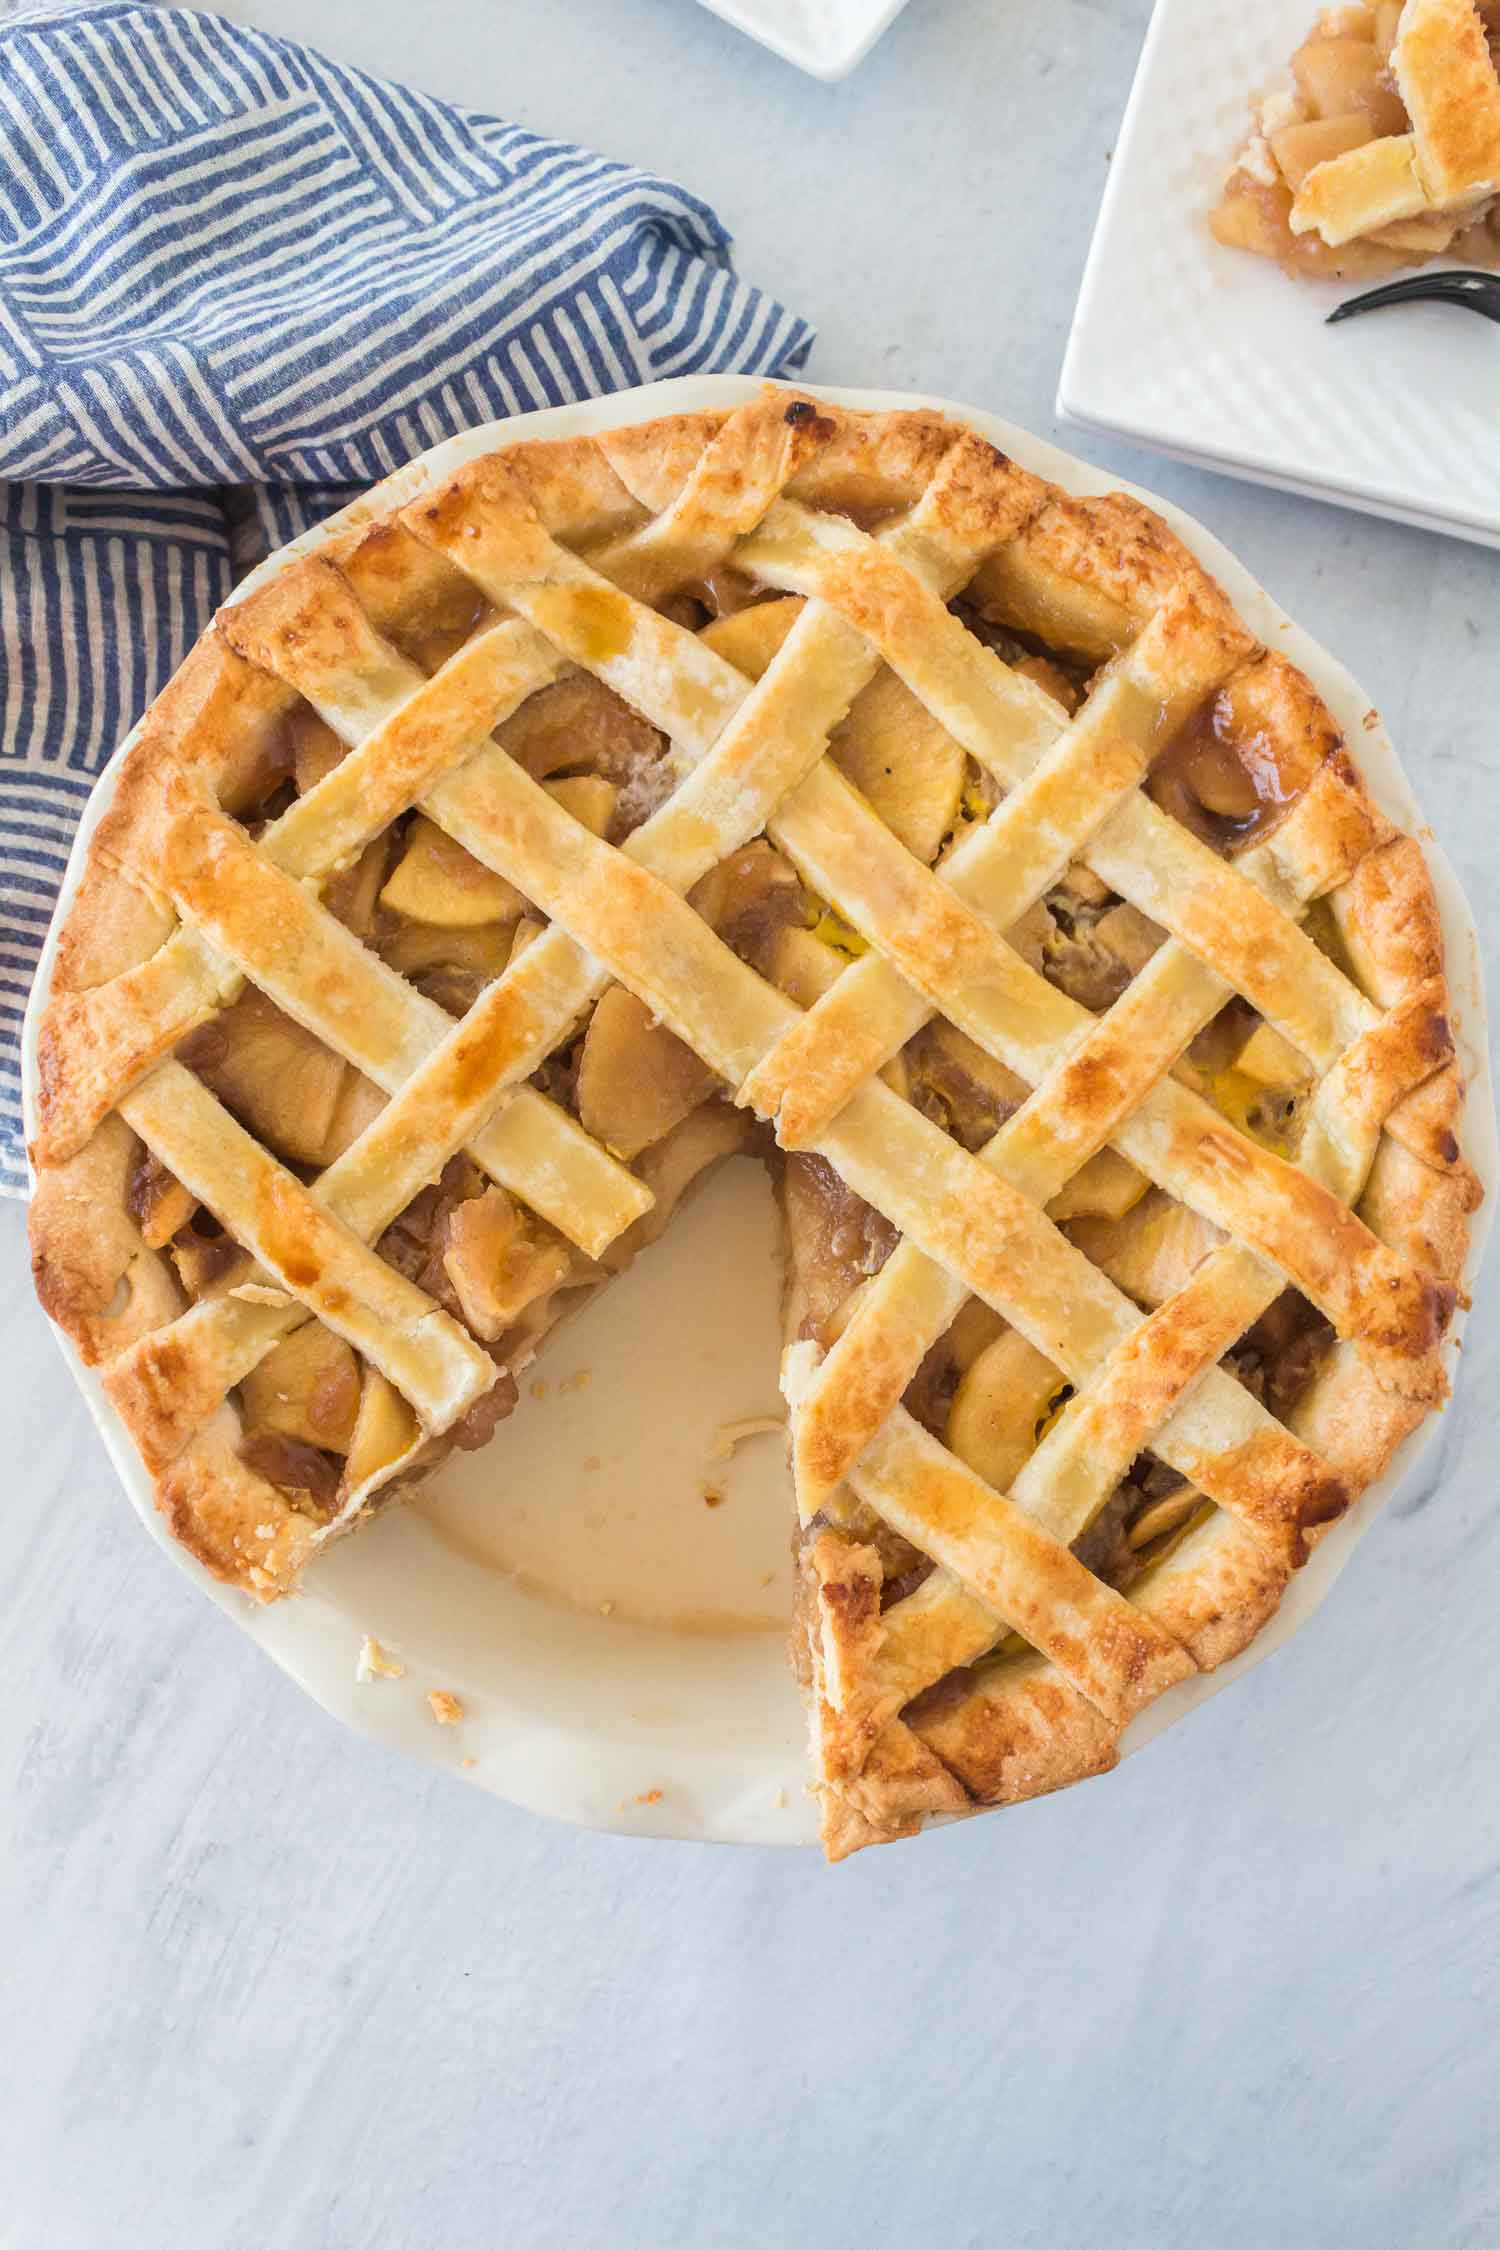 An apple pie with a slice cut out of it on a white plate in the background with a blue and white striped towel.